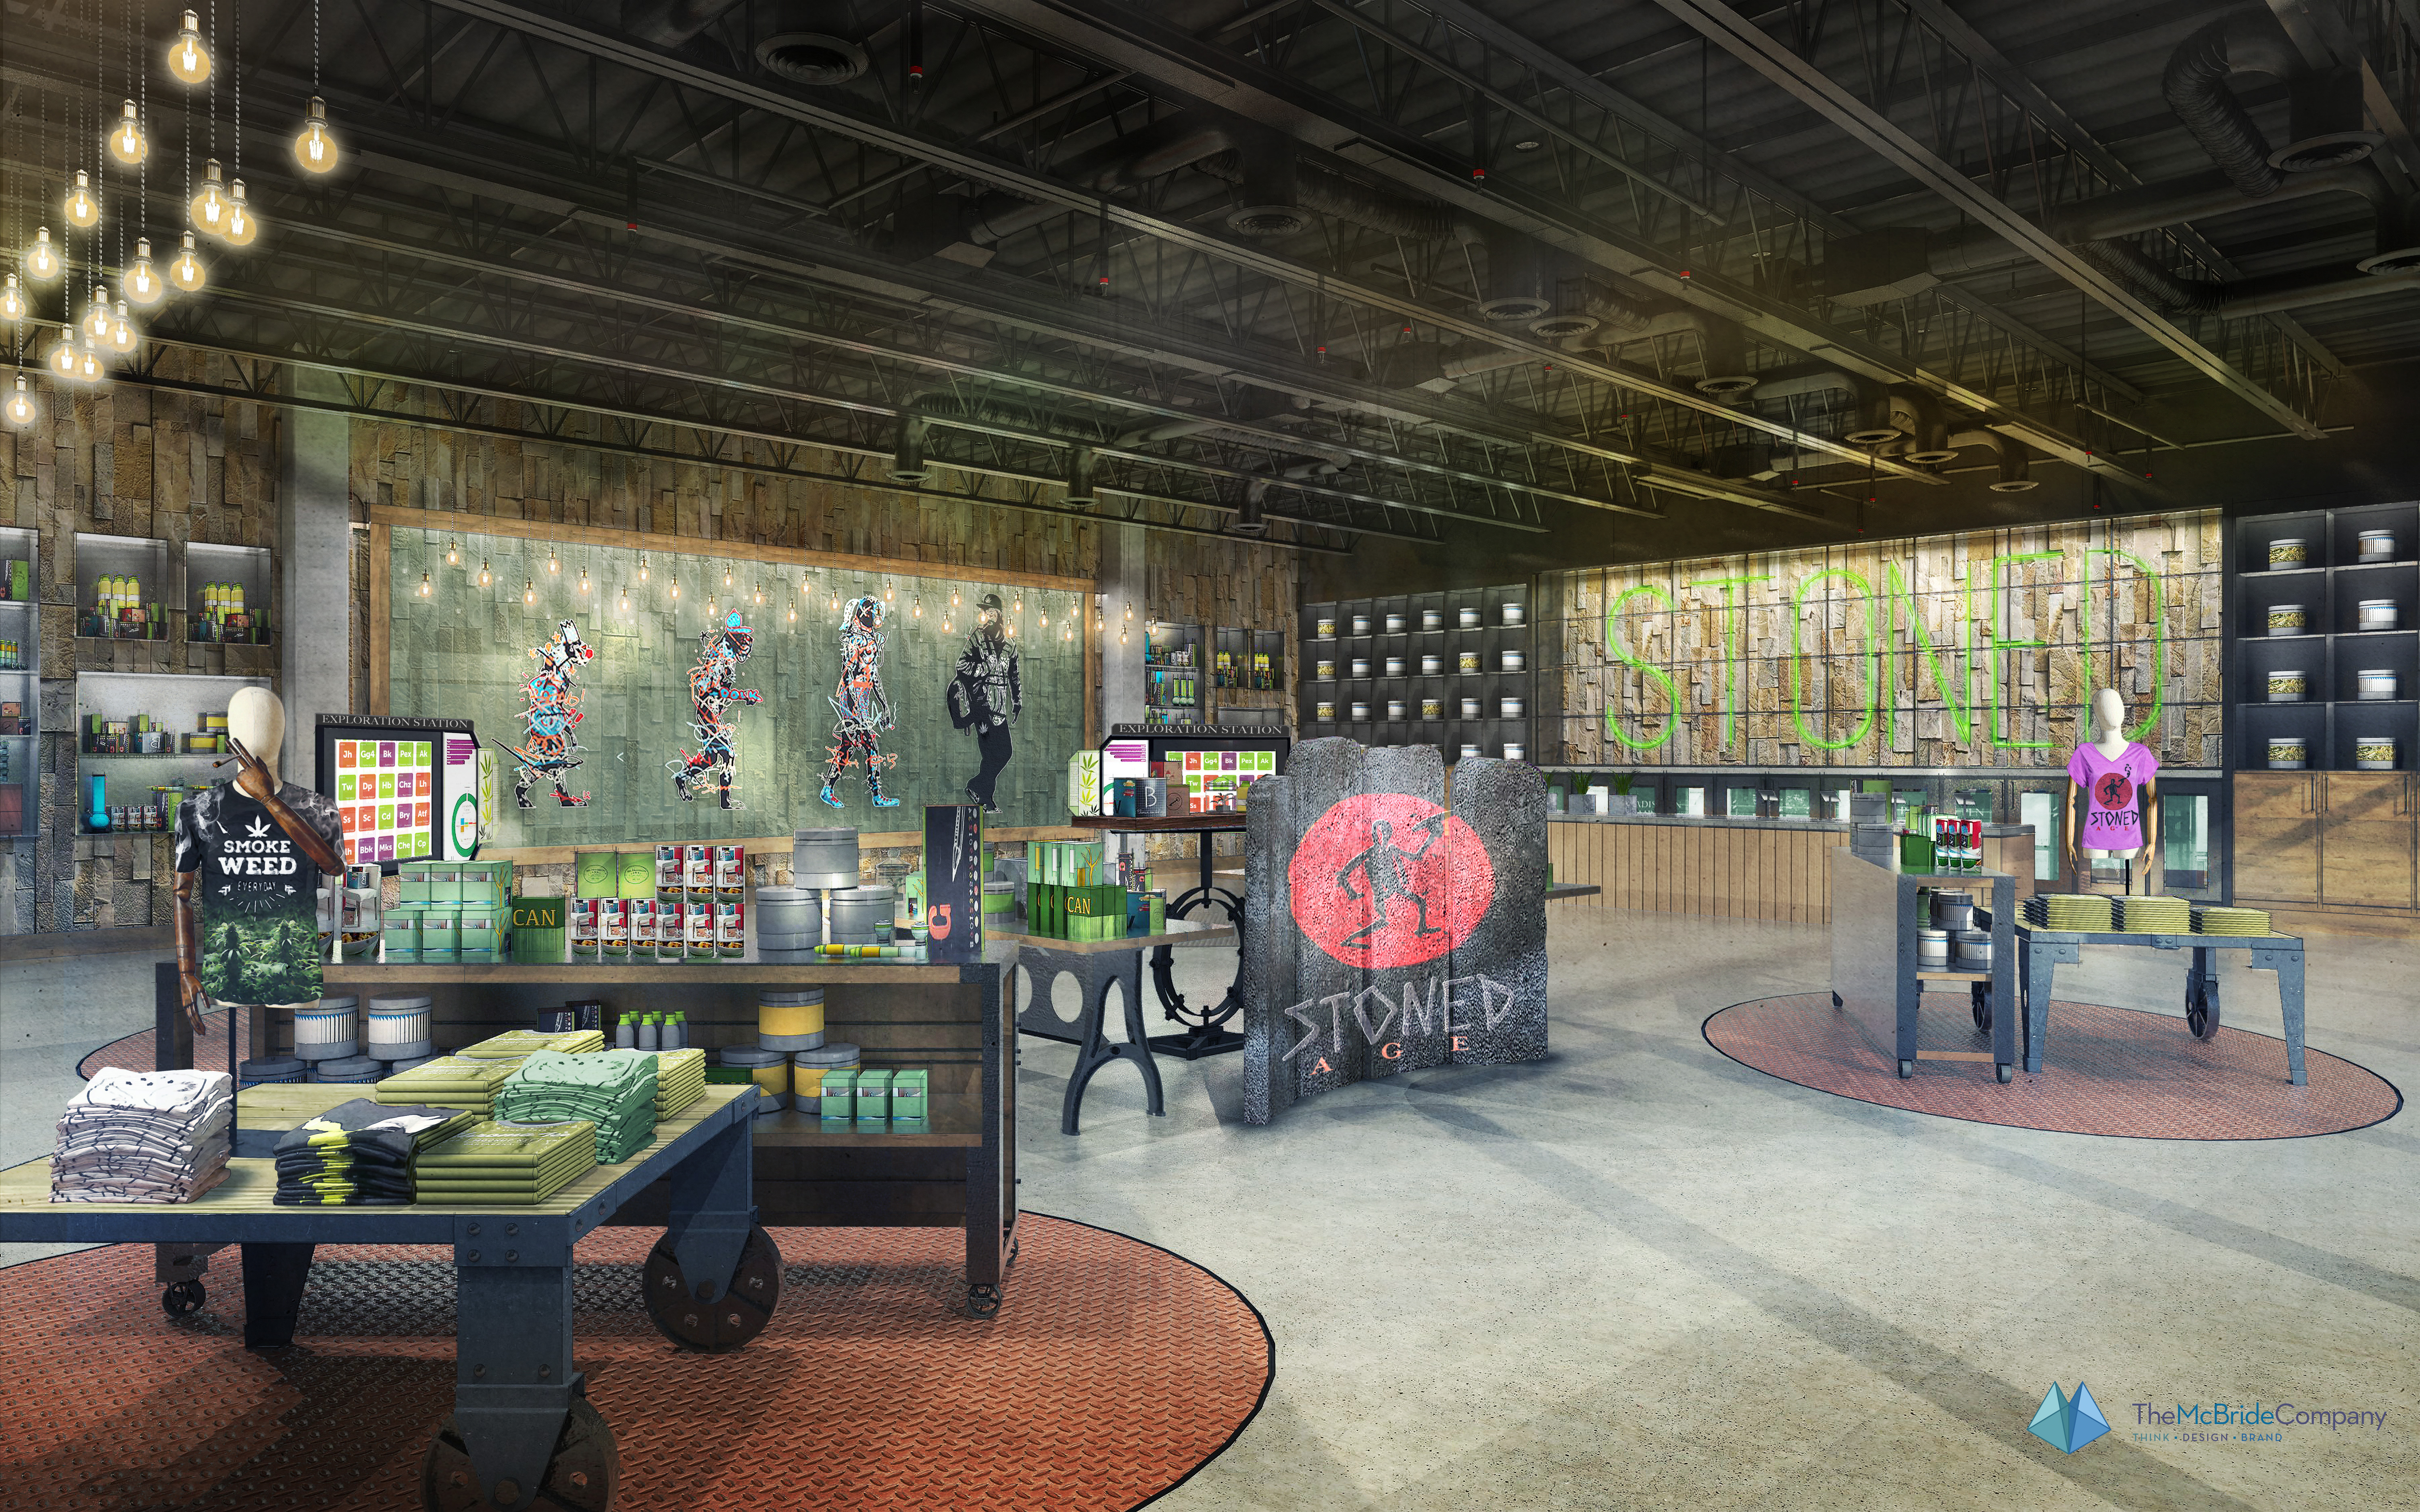 http://mcbridedesign.com/news/stoned-age-a-contemporary-cannabis-dispensary-designed-for-millennials